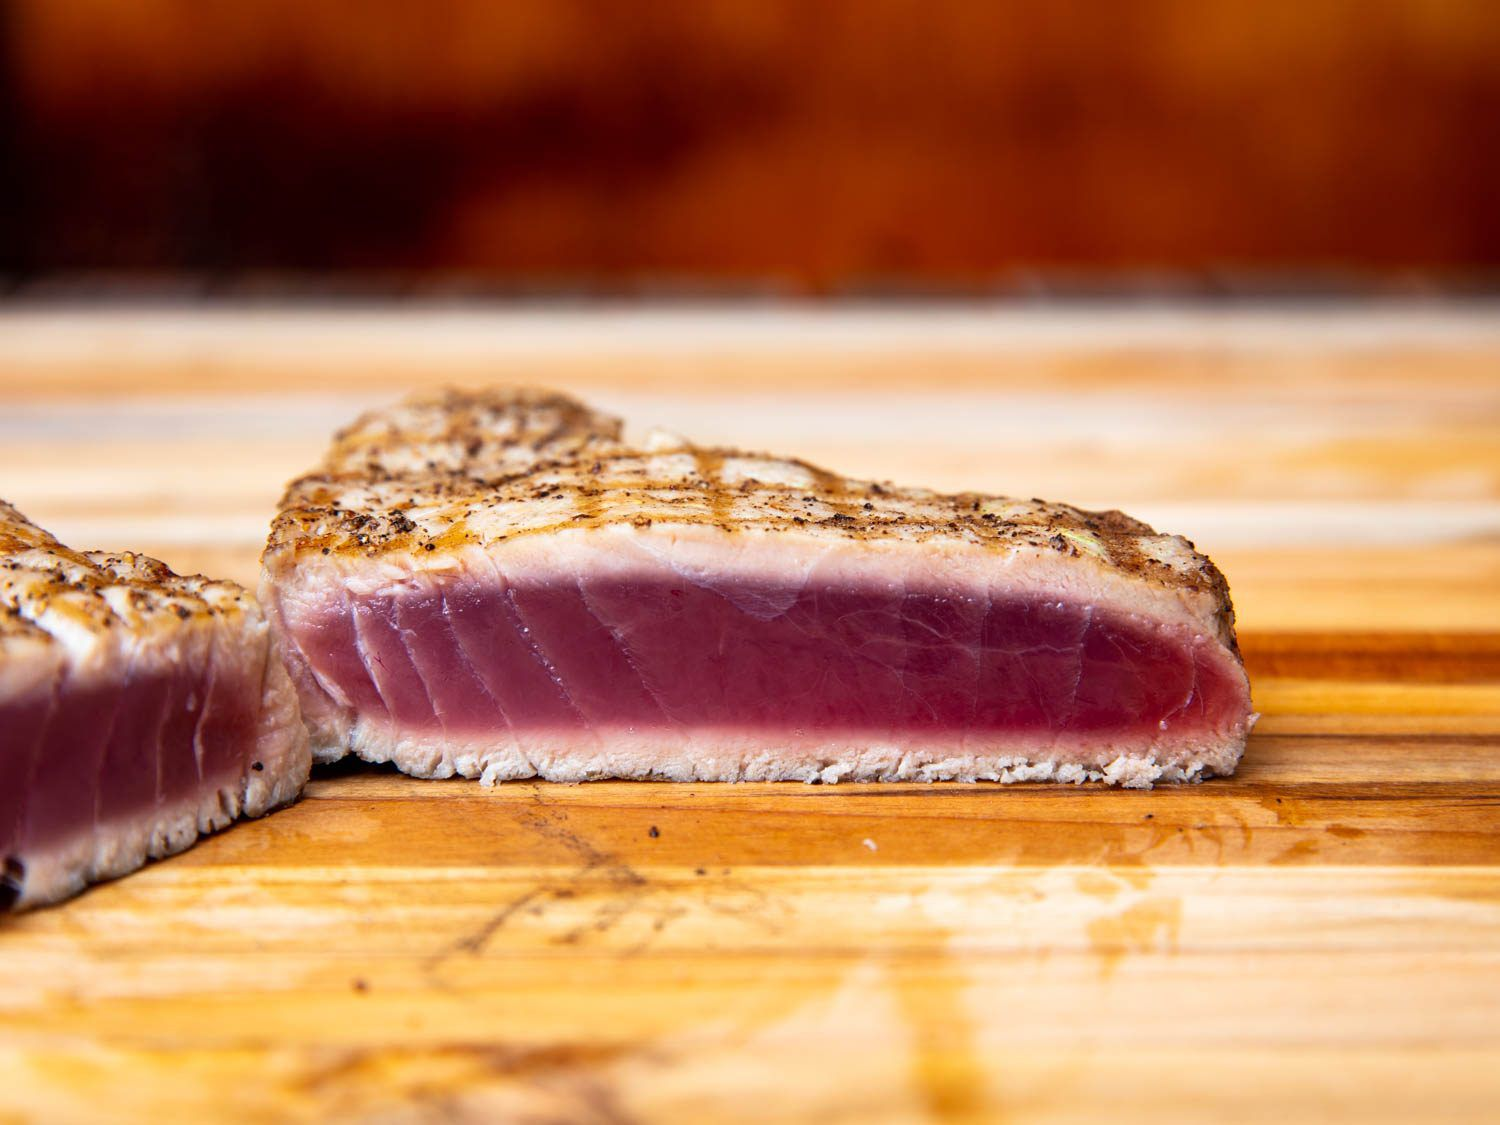 A piece of grilled tuna on the cutting board, cut in half to show the cross-section of a nicely cooked piece: seared well on the exterior, but close to raw in the middle.